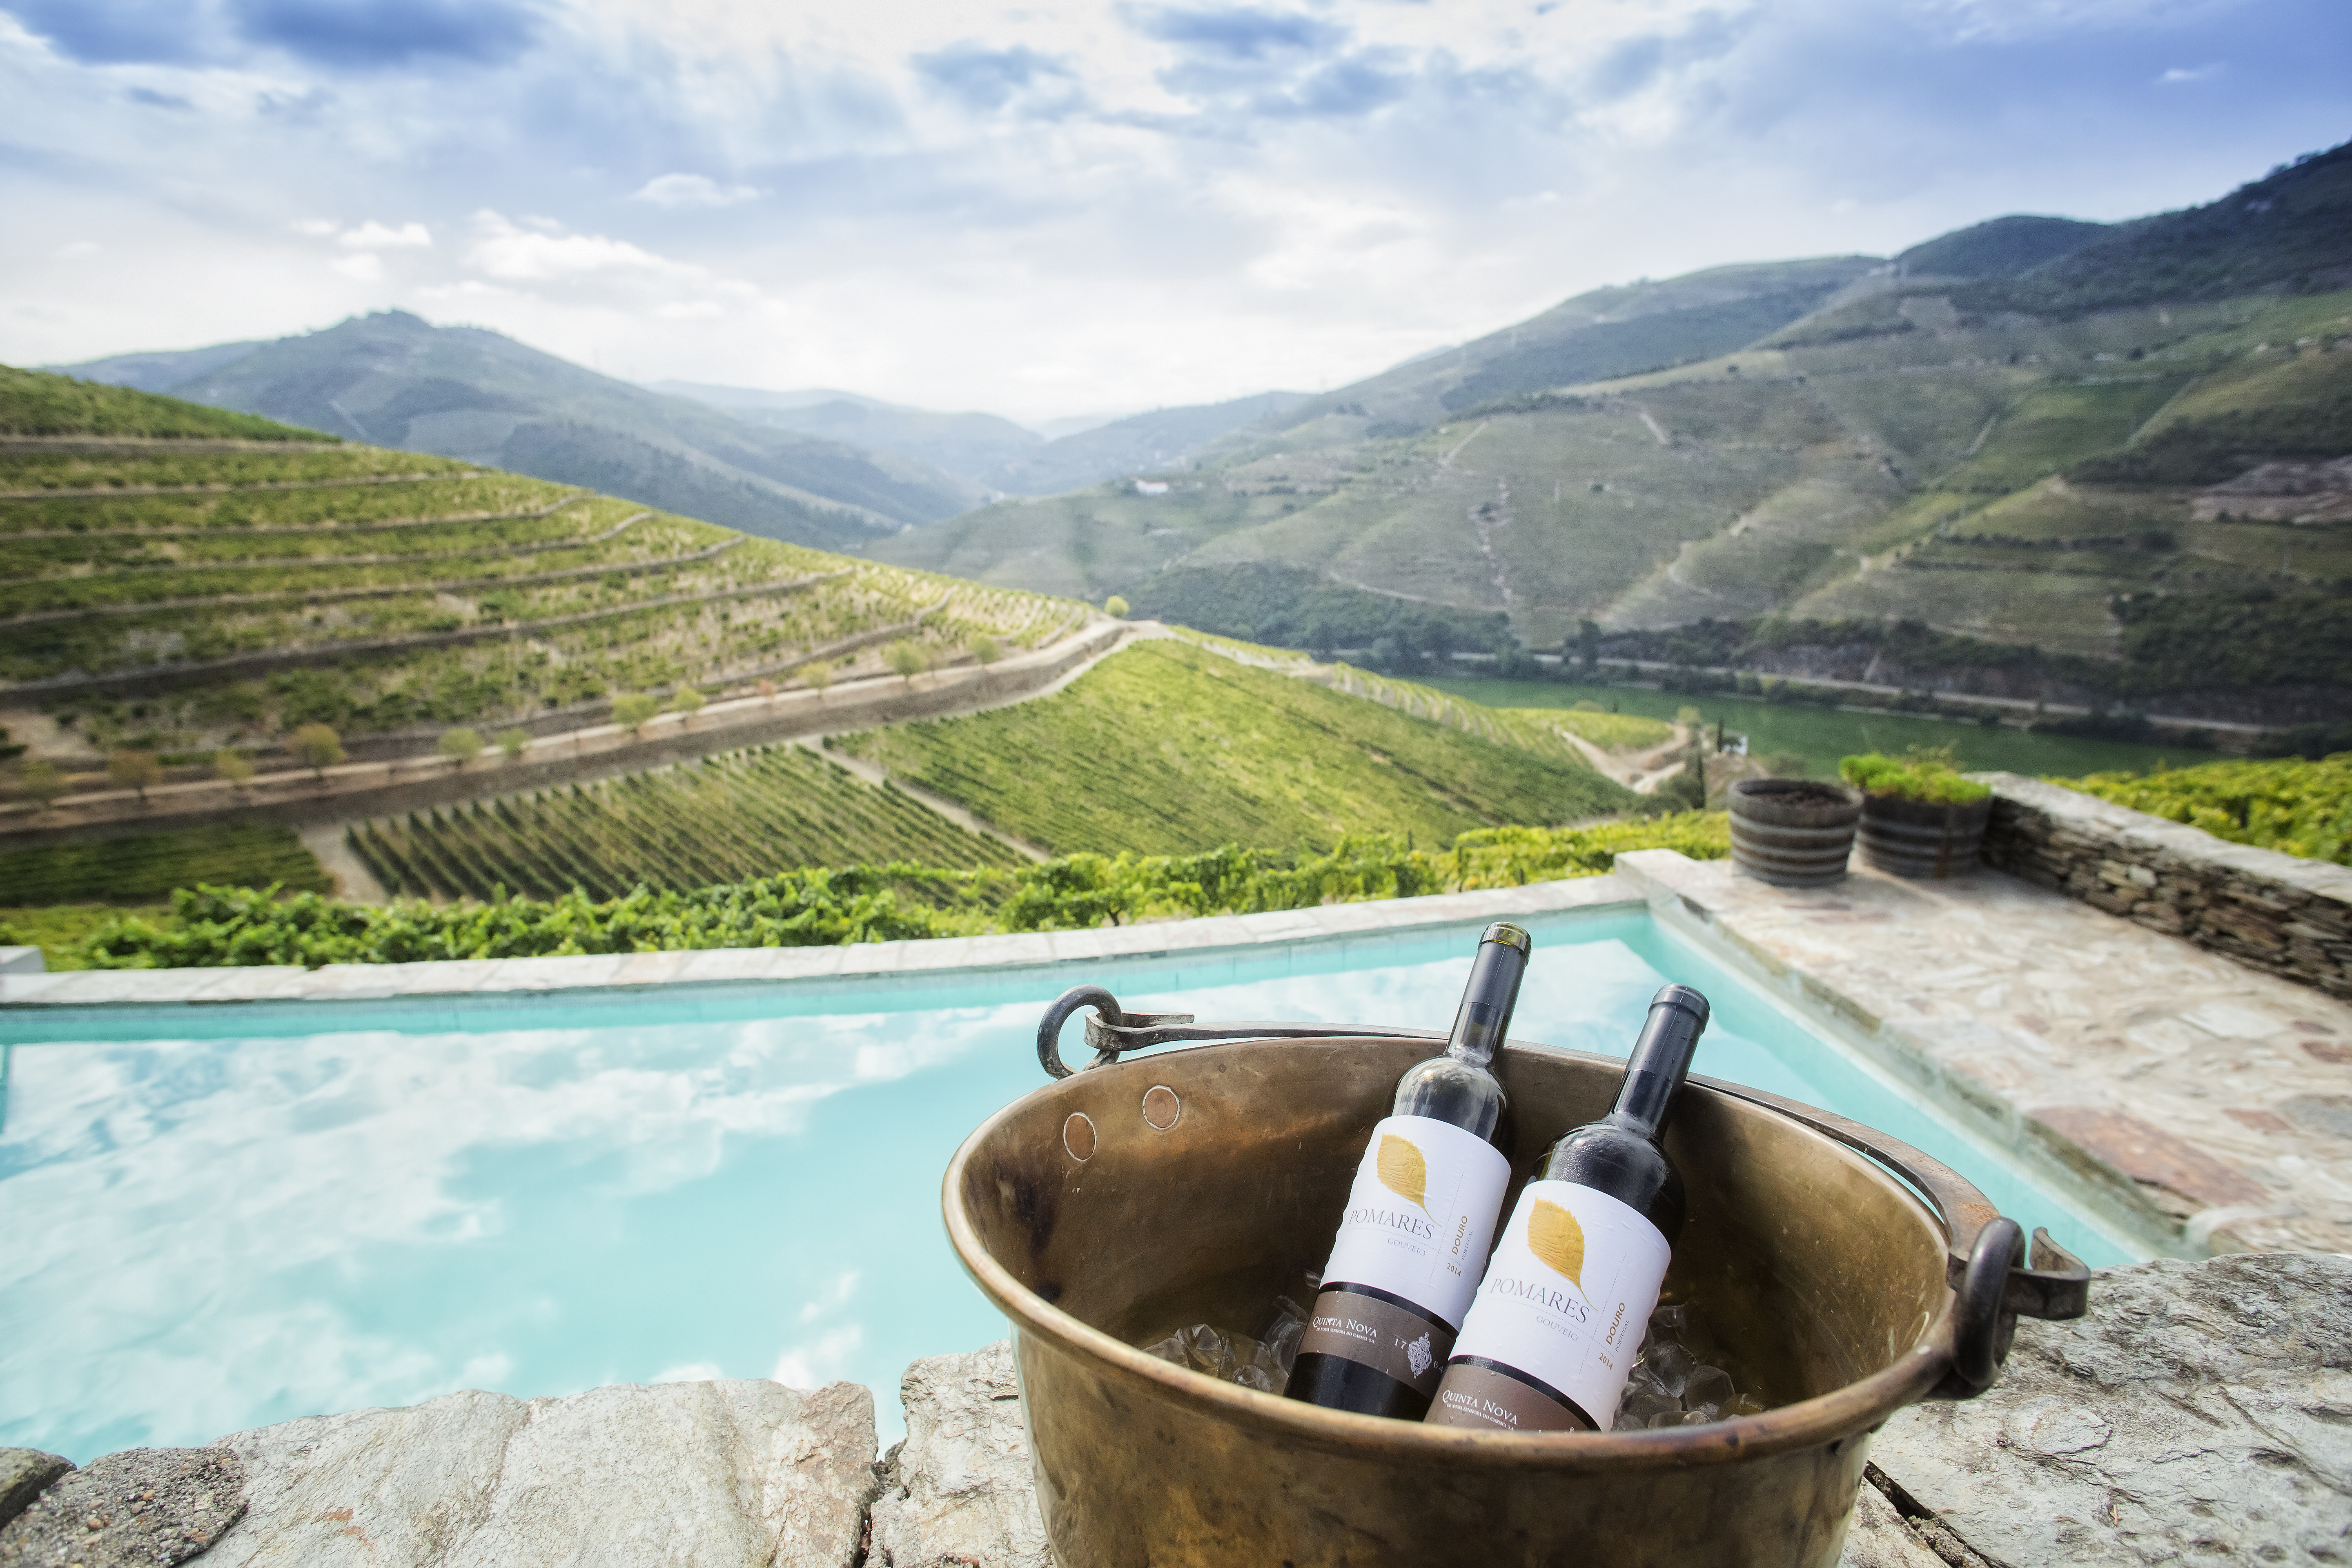 CONTEST: Win a Luxurious stay for 2 in Douro Valley with Dinner and Wine Pairing Experience